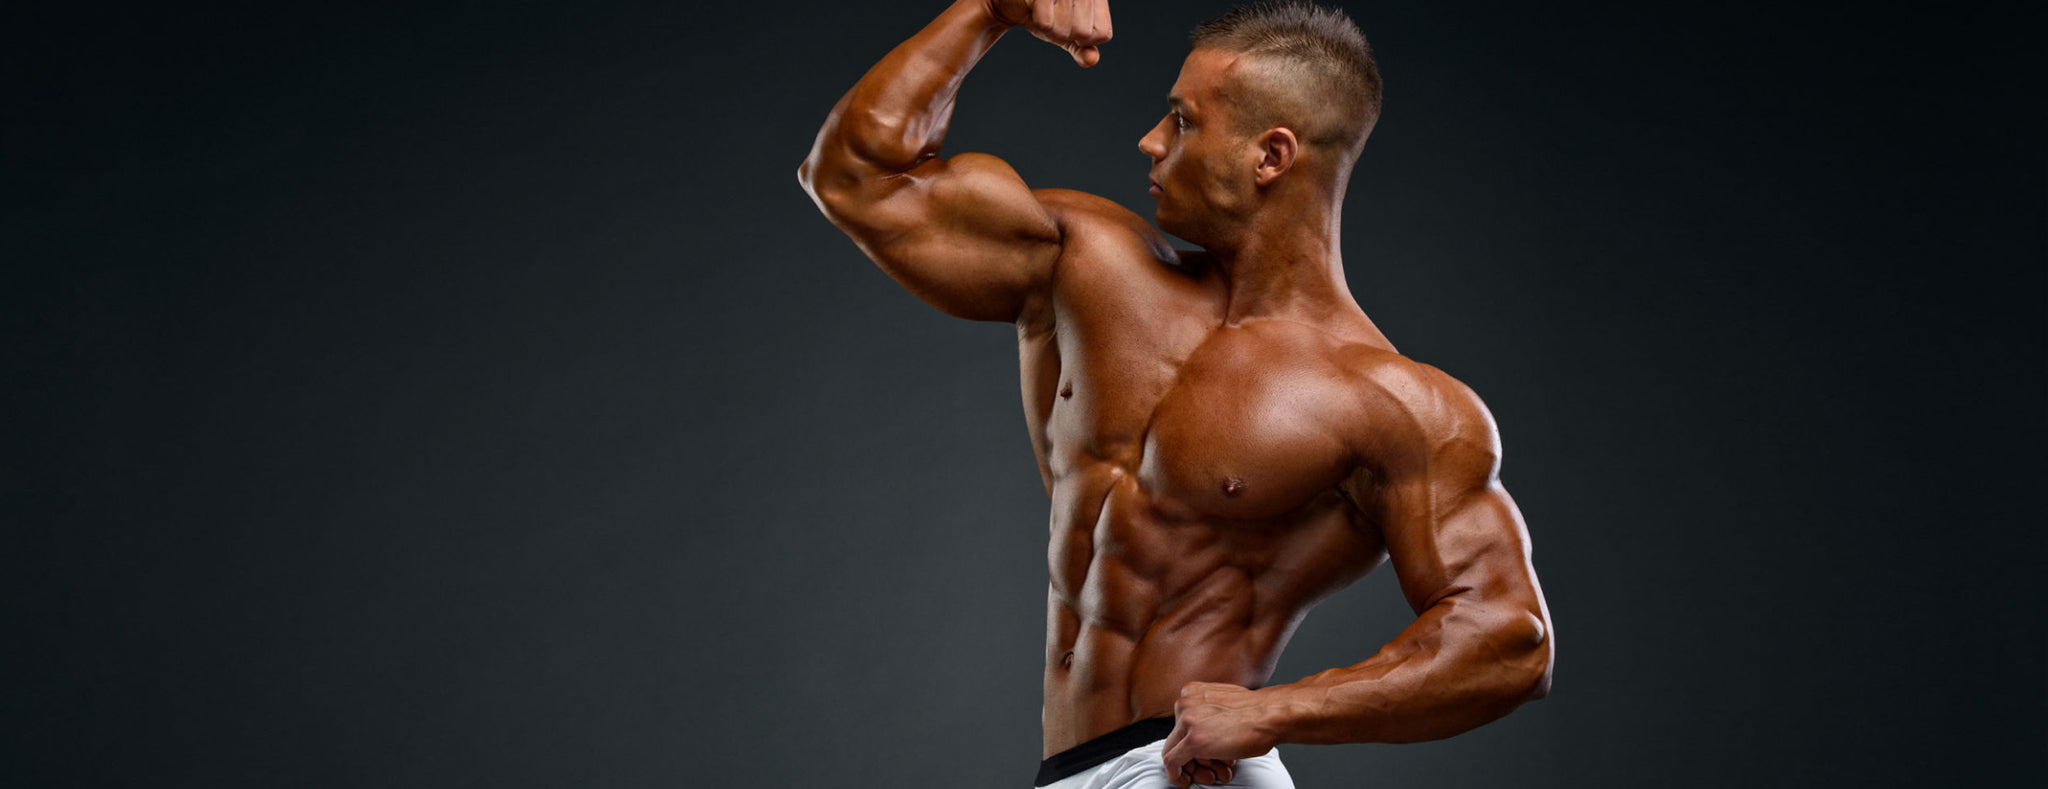 KEYS TO BUILDING BIGGER ARMS